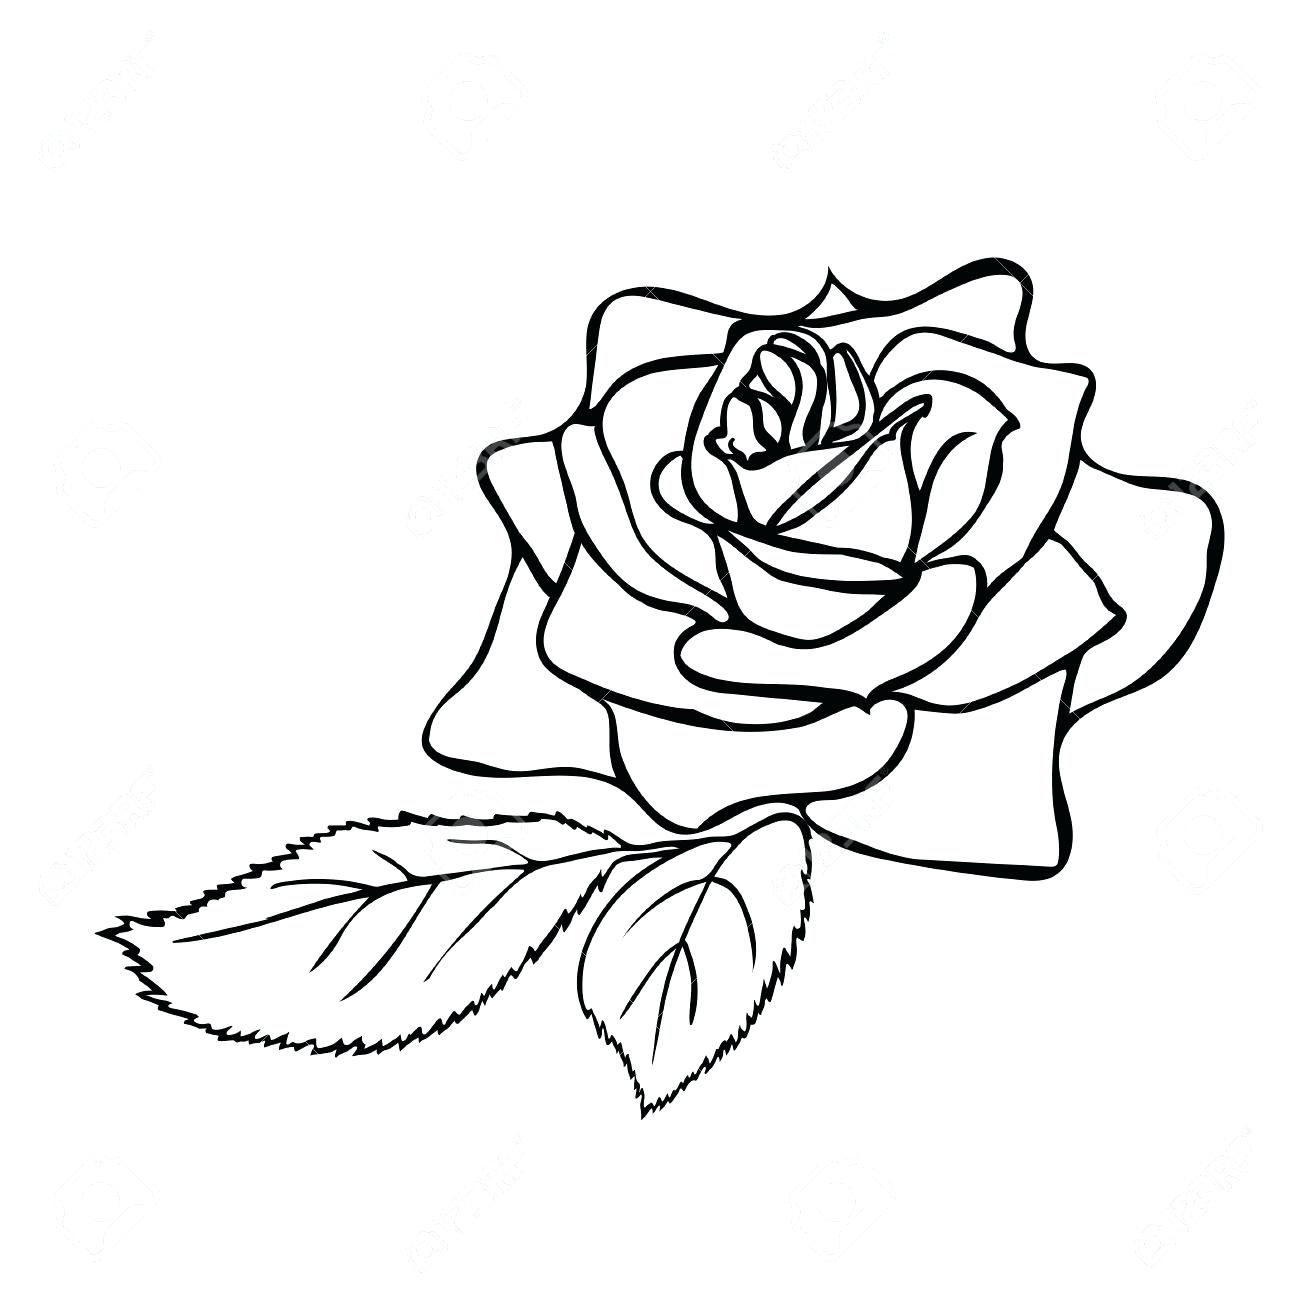 1300x1300 Coloring Marvellous Rose Drawing Outline. Flowers Drawing Outline